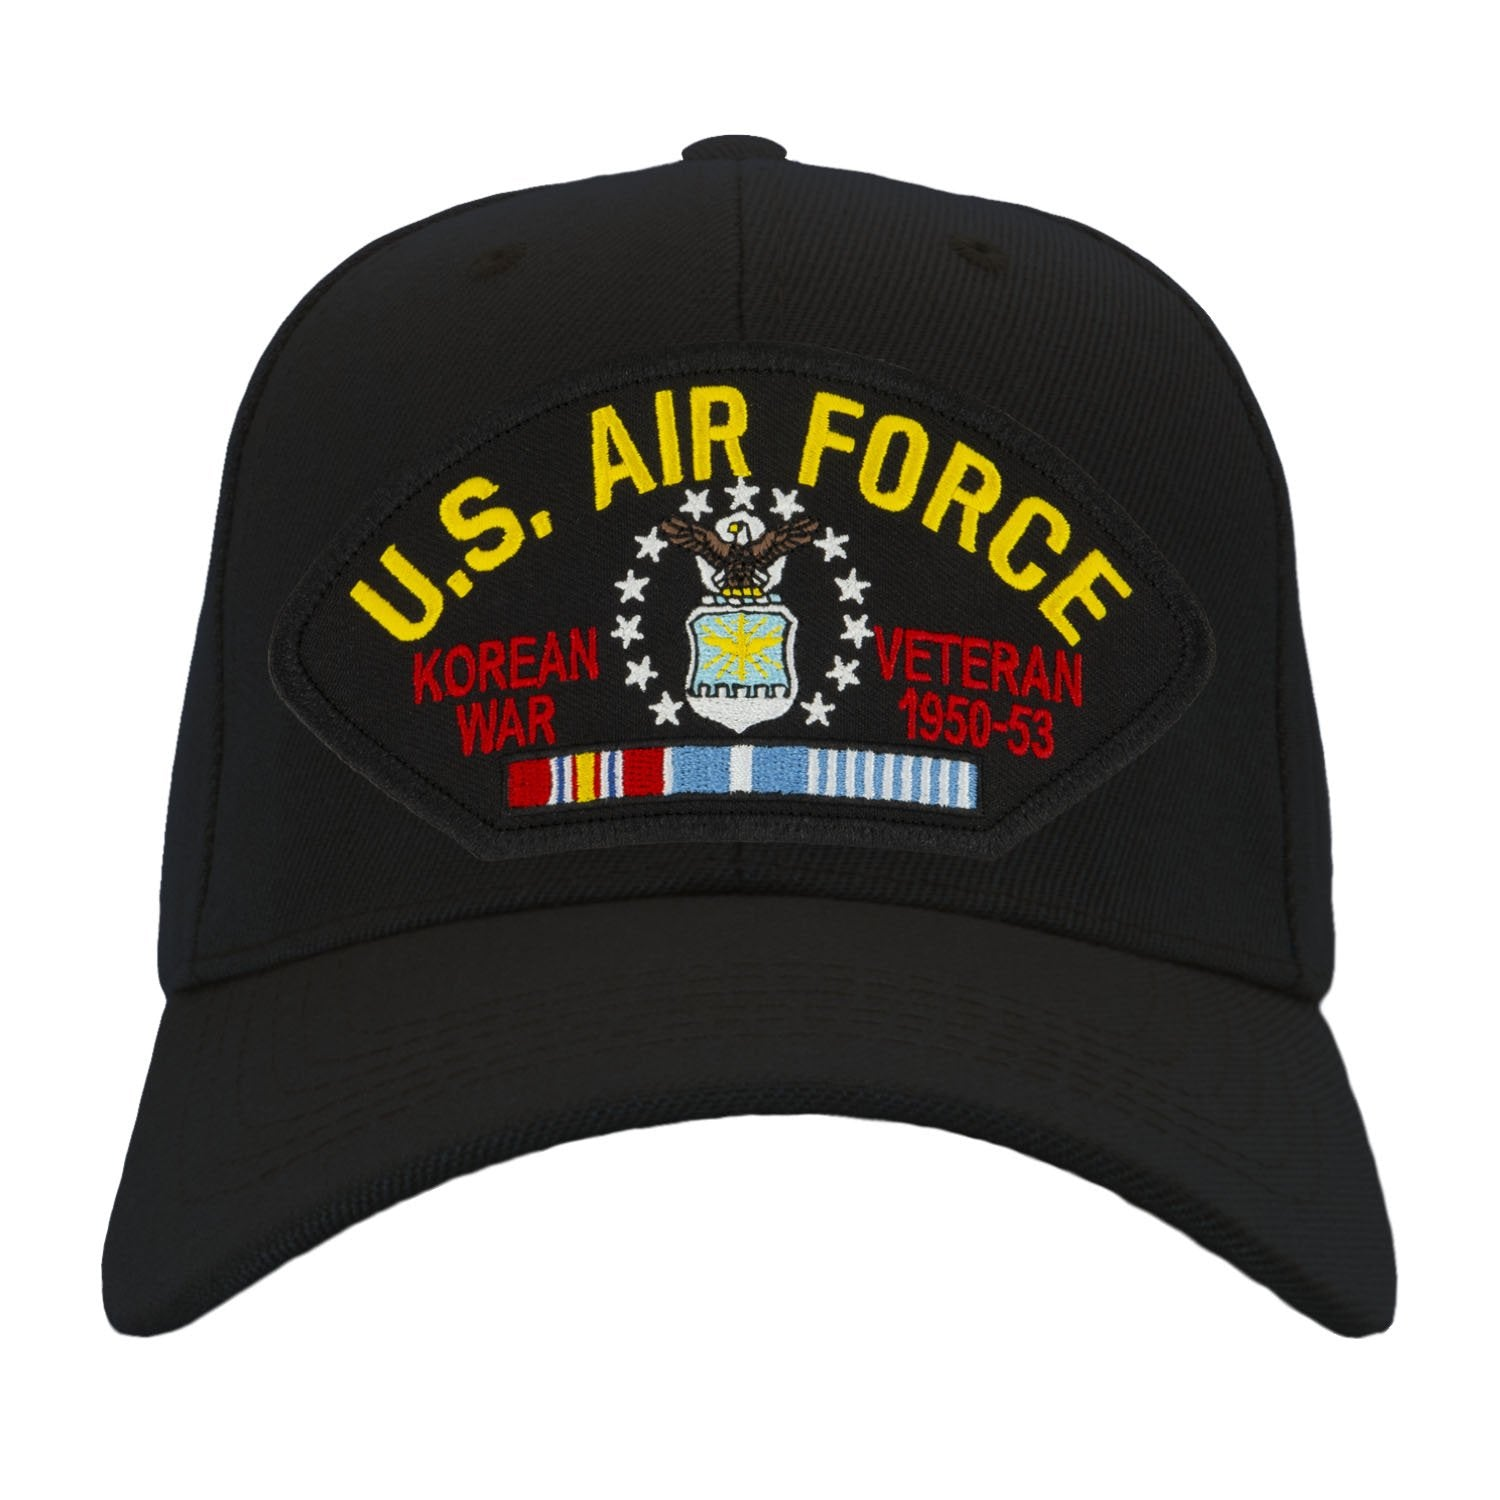 US Air Force - Korean War Veteran Hat - Multiple Colors Available